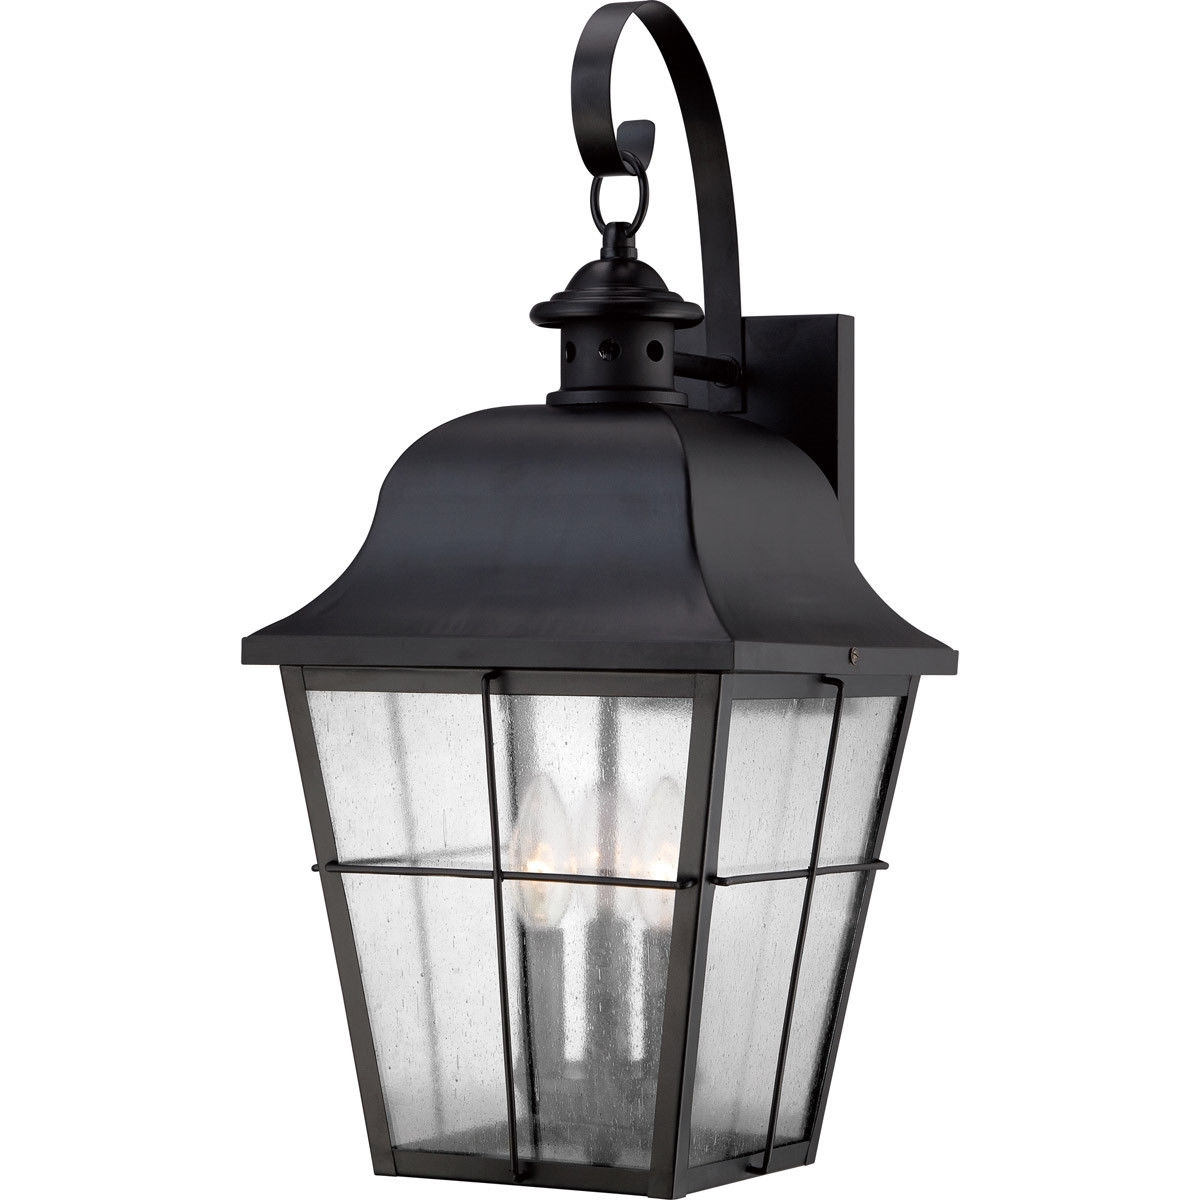 2018 Quoizel Mhe8410K Millhouse 3 Light 22 Inch Mystic Black Outdoor Wall Within Quoizel Outdoor Lanterns (Gallery 5 of 20)